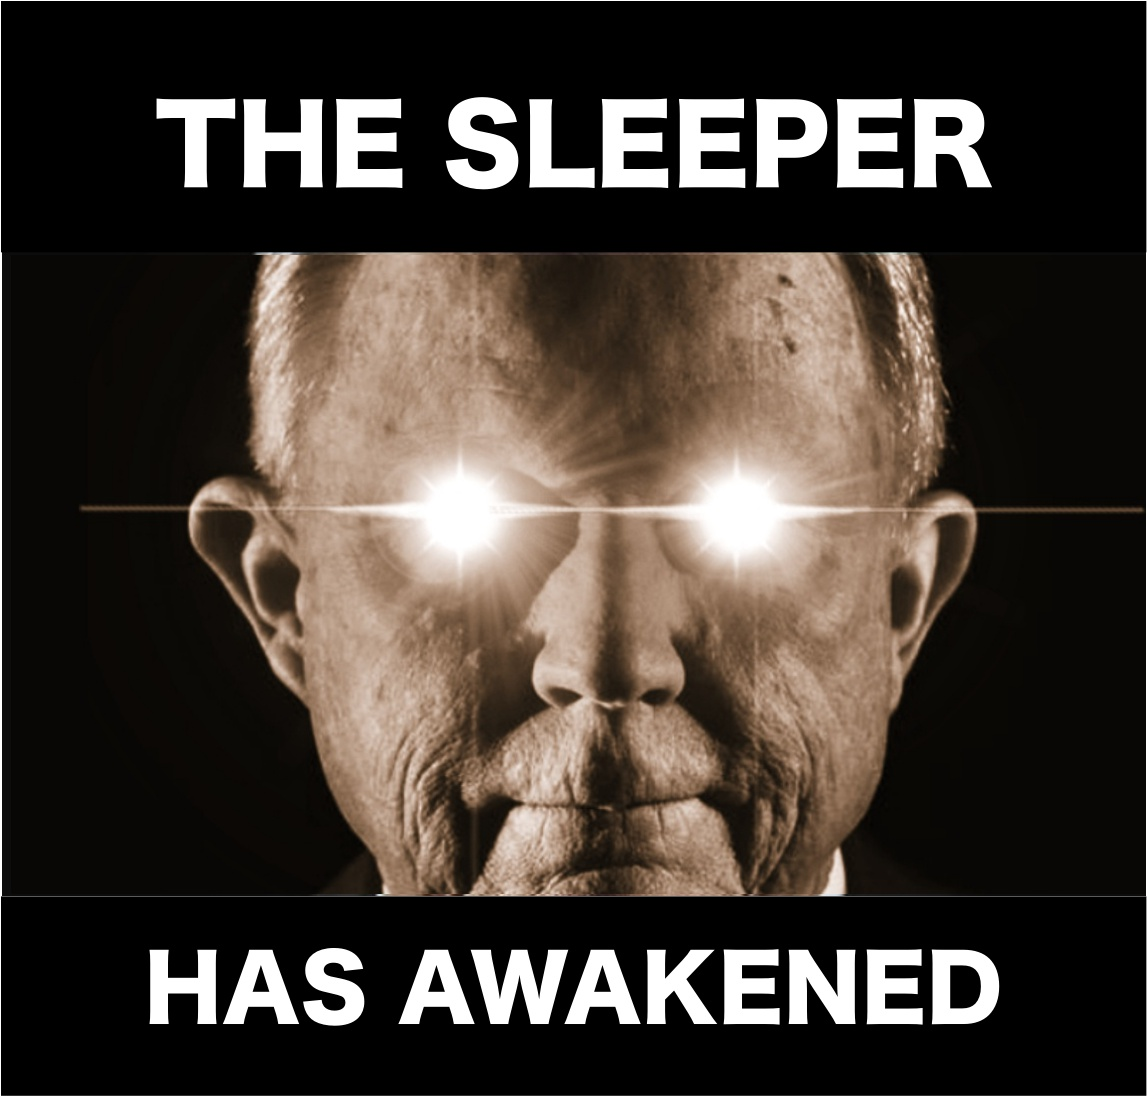 A Legend Exposed, a Renegade in the Killbox, and THE SLEEPER HAS AWAKENED! #RELEASETHETEXTS #QAnon #NewQ #GreatAwakening